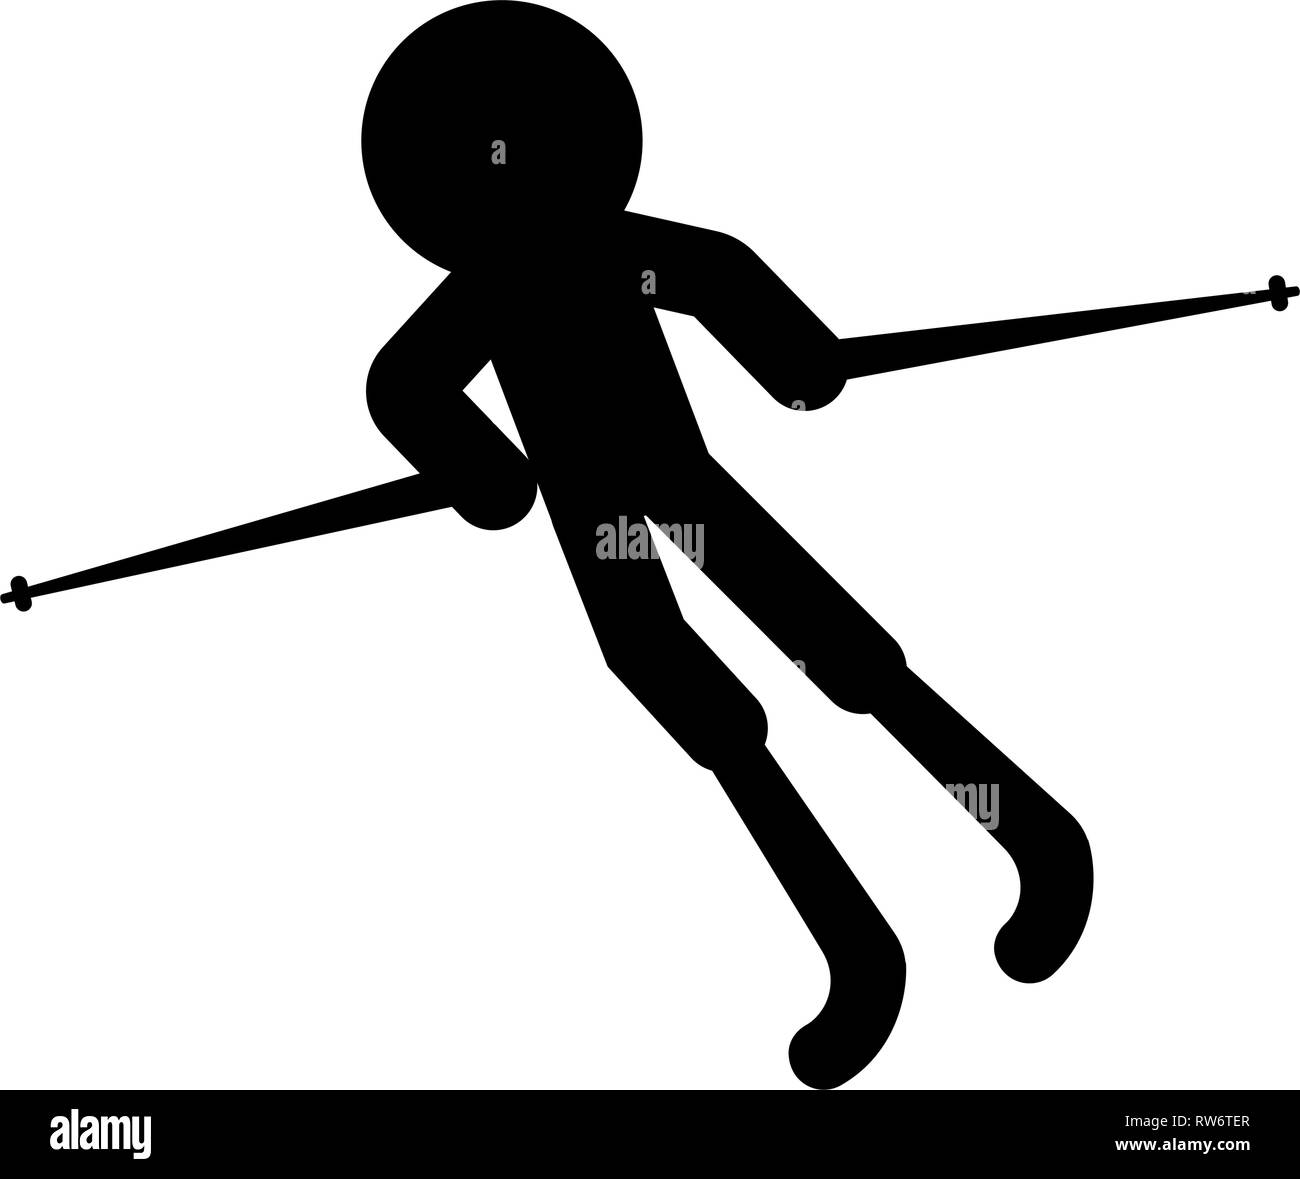 Isolated skiing person icon - Stock Image